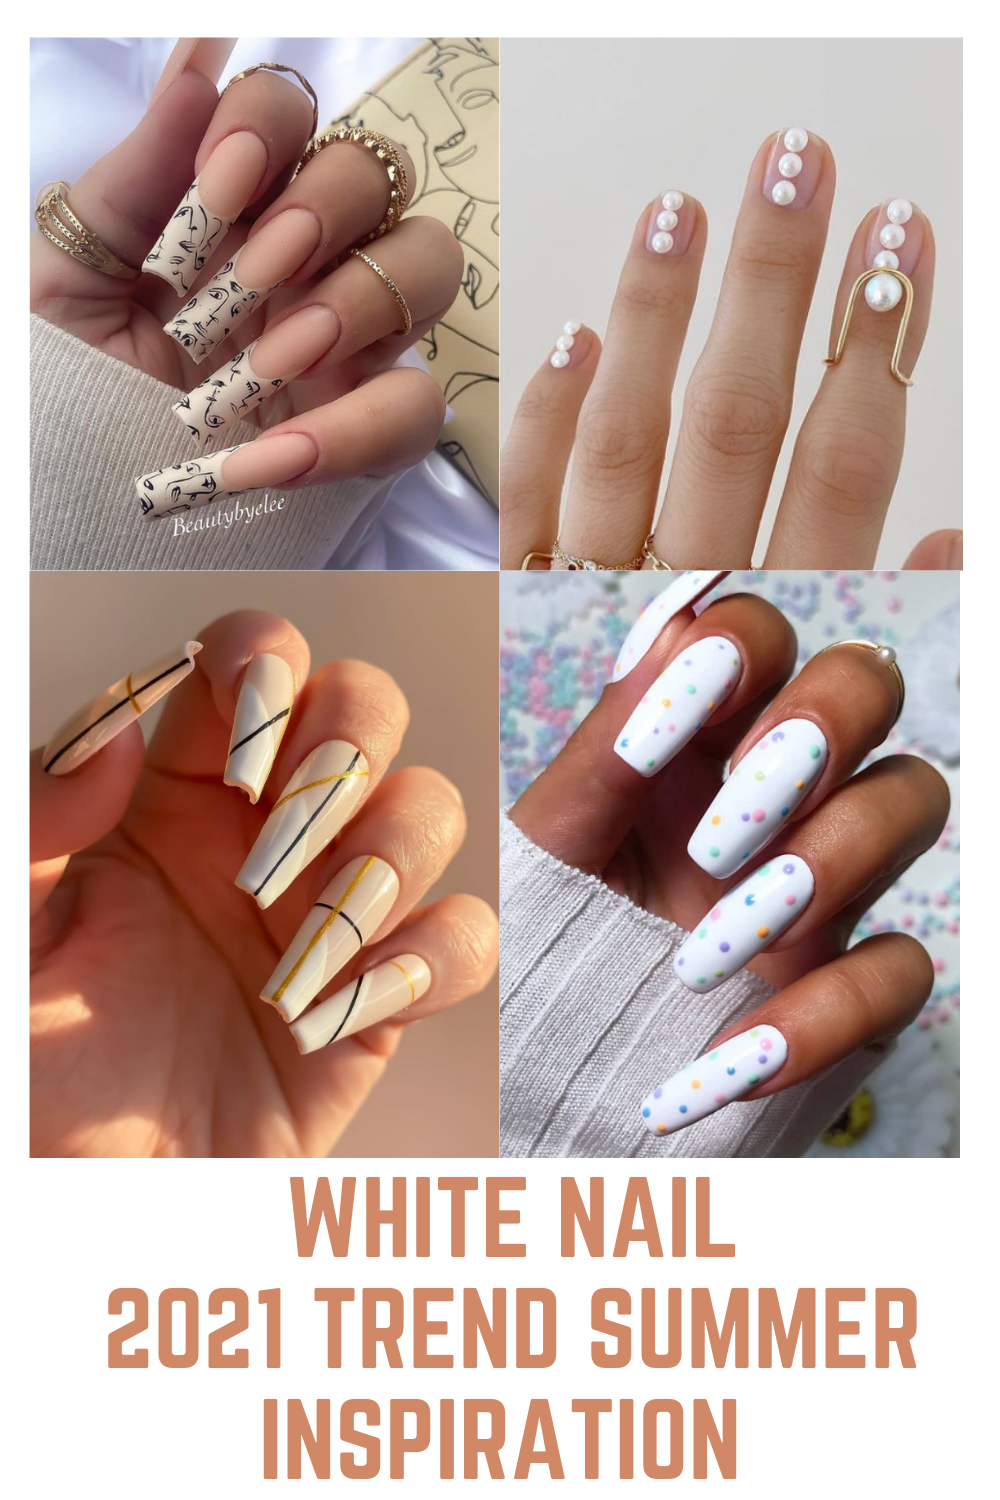 White nail   2021 Trend stylish acrylic nails for summer inspiration